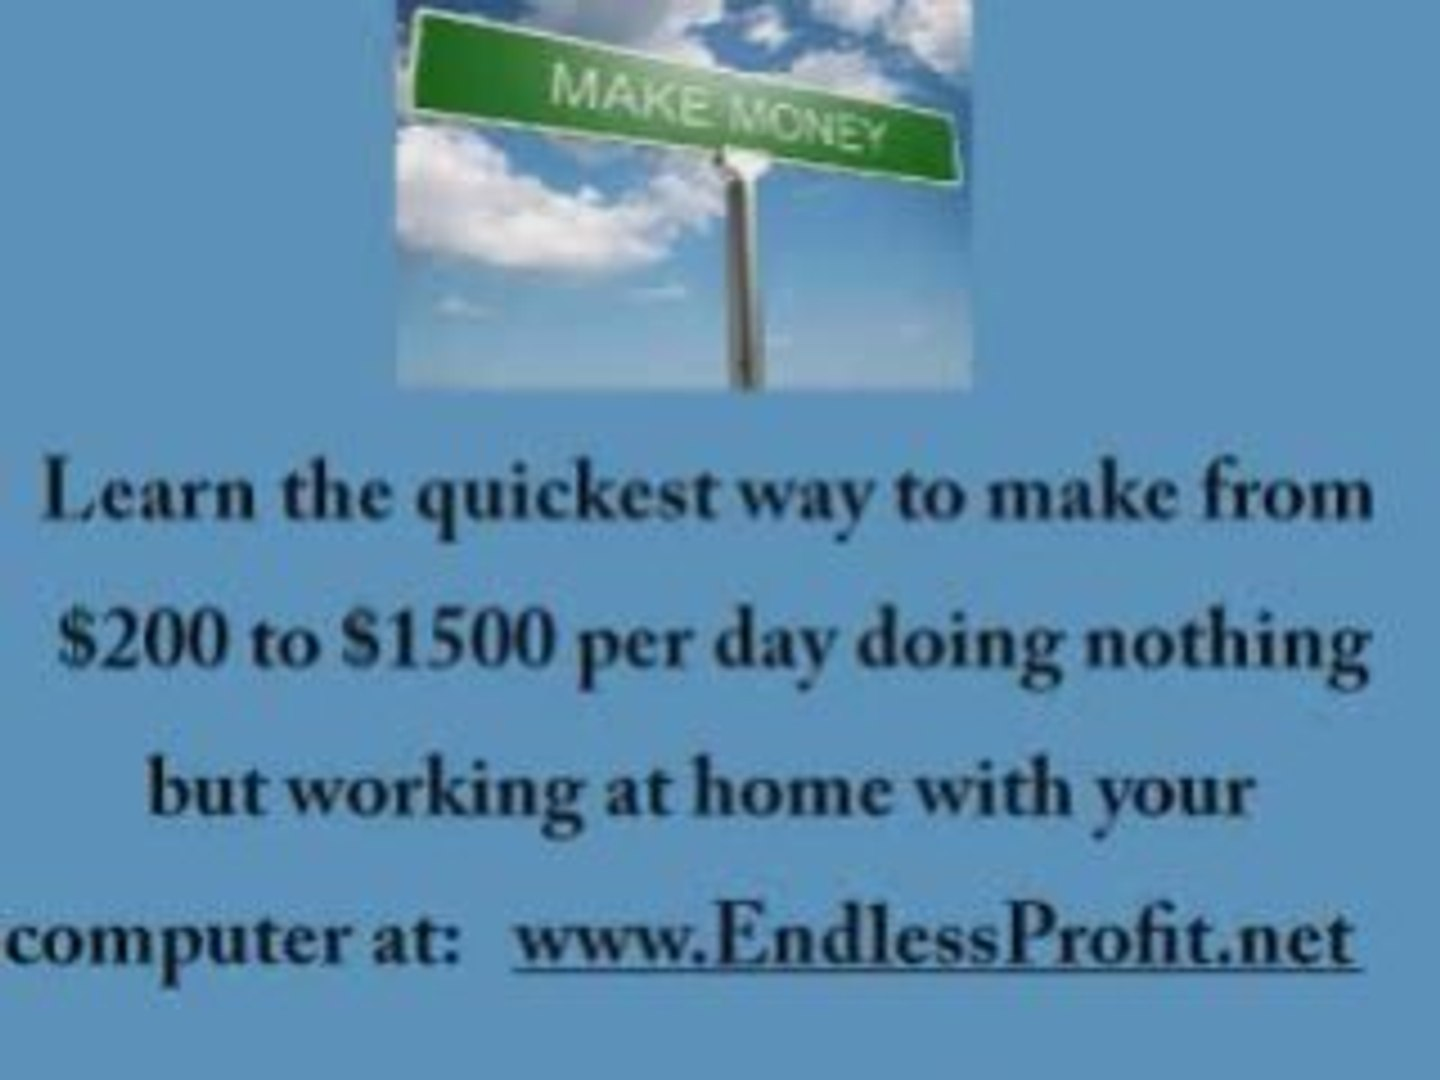 The Quickest Way To Earn 200 To 1500 Per Day From Home